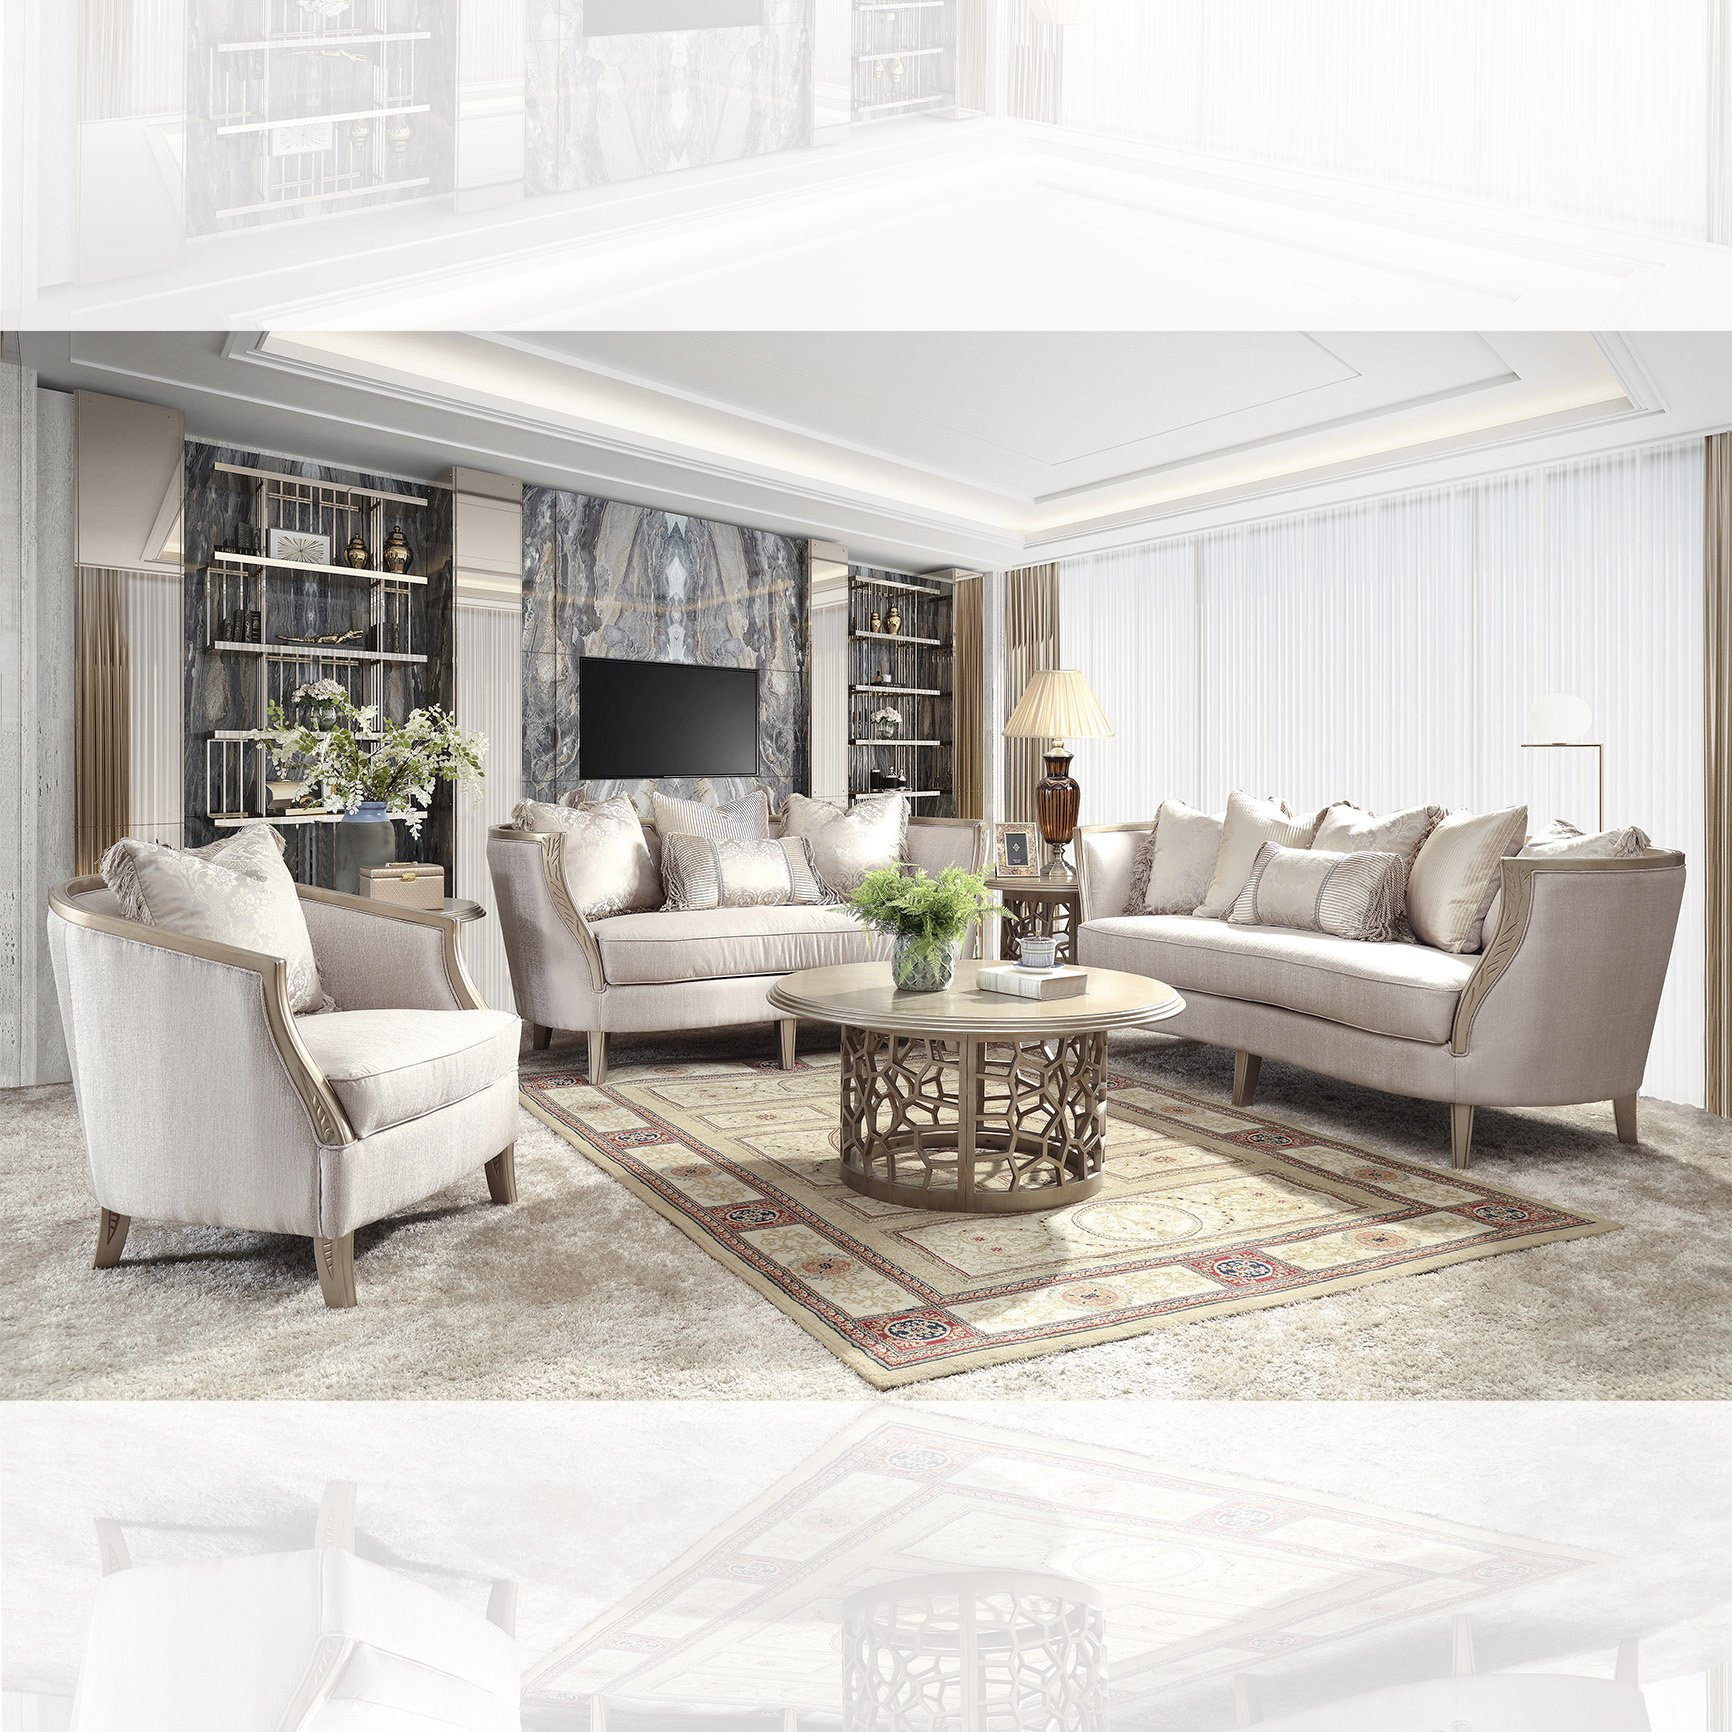 Traditional Living Room Set 3 PCS in Beige Fabric Traditional Style Homey Design HD-632